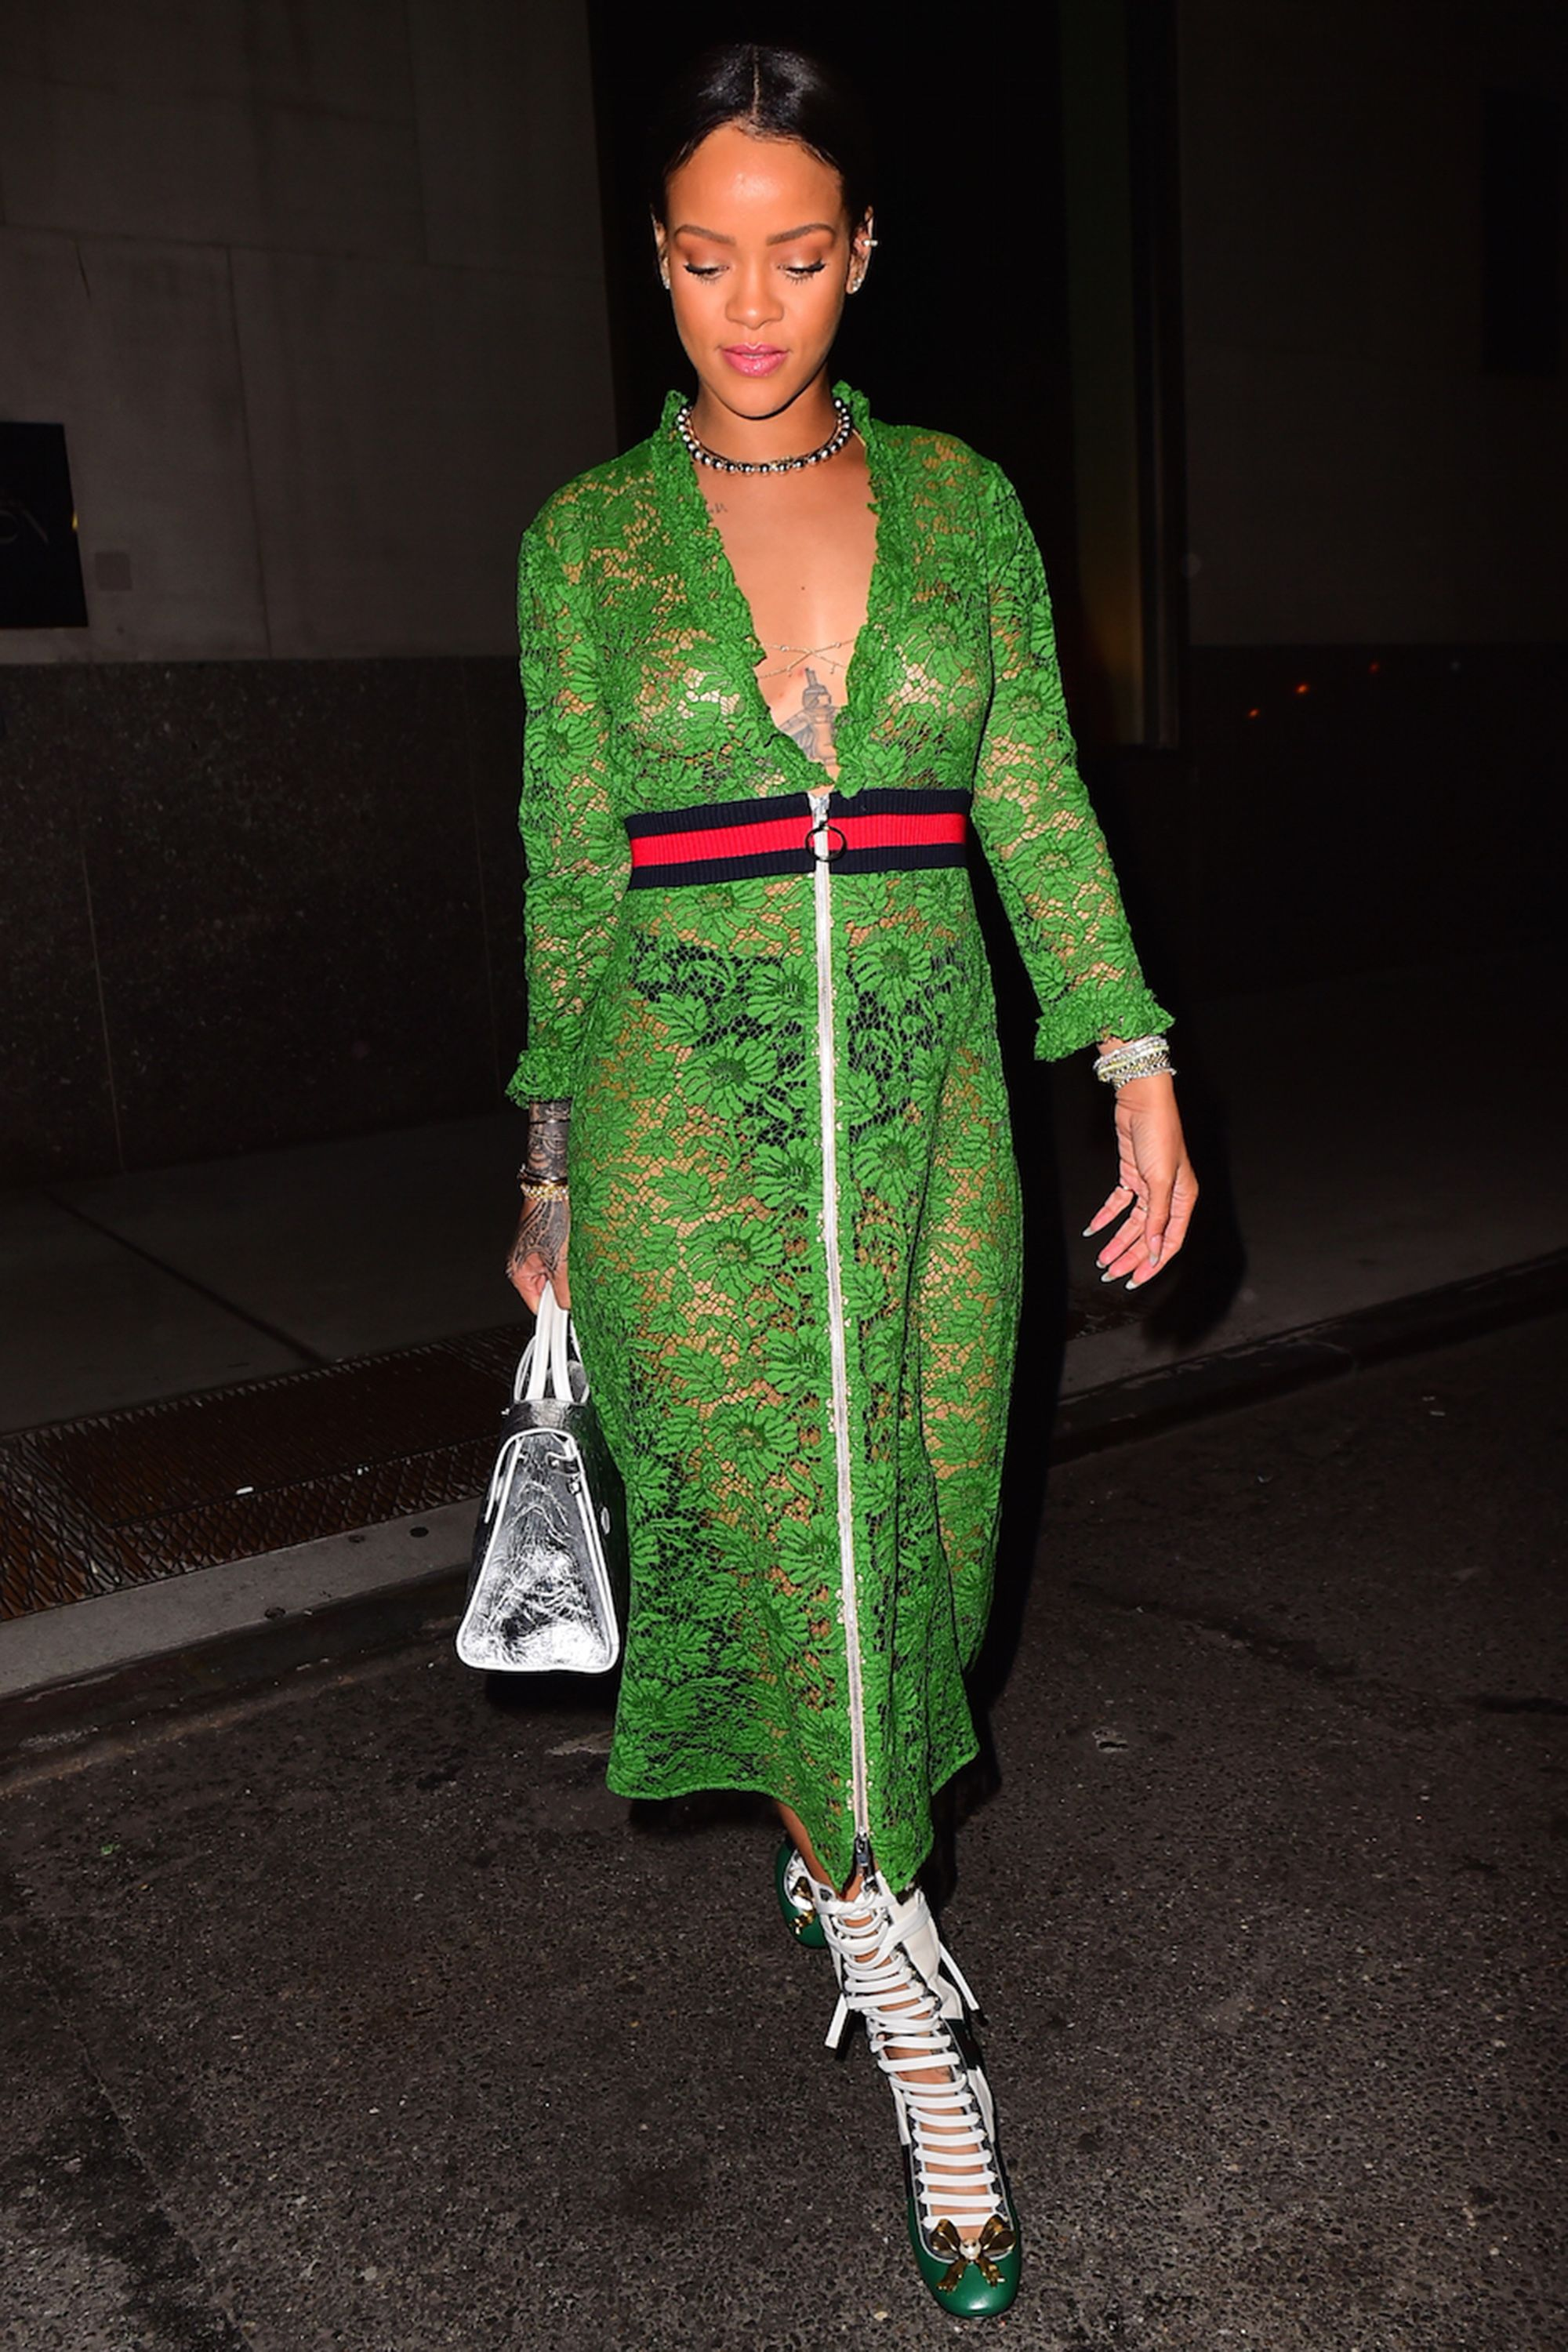 Rihanna was spotted out in NYC on Wednesday evening, as she headed to dinner with family at the Edition Hotel. The  singer put on a stunning display in Gucci SS16, wearing a green, lace dress. &#xA&#x3B;&lt&#x3B;P&gt&#x3B;&#xA&#x3B;Pictured: Rihanna&#xA&#x3B;&lt&#x3B;B&gt&#x3B;Ref: SPL1291404  260516  &lt&#x3B;/B&gt&#x3B;&lt&#x3B;BR/&gt&#x3B;&#xA&#x3B;Picture by: 247PAPS.TV / Splash News&lt&#x3B;BR/&gt&#x3B;&#xA&#x3B;&lt&#x3B;/P&gt&#x3B;&lt&#x3B;P&gt&#x3B;&#xA&#x3B;&lt&#x3B;B&gt&#x3B;Splash News and Pictures&lt&#x3B;/B&gt&#x3B;&lt&#x3B;BR/&gt&#x3B;&#xA&#x3B;Los Angeles:310-821-2666&lt&#x3B;BR/&gt&#x3B;&#xA&#x3B;New York:212-619-2666&lt&#x3B;BR/&gt&#x3B;&#xA&#x3B;London:870-934-2666&lt&#x3B;BR/&gt&#x3B;&#xA&#x3B;photodesk@splashnews.com&lt&#x3B;BR/&gt&#x3B;&#xA&#x3B;&lt&#x3B;/P&gt&#x3B;